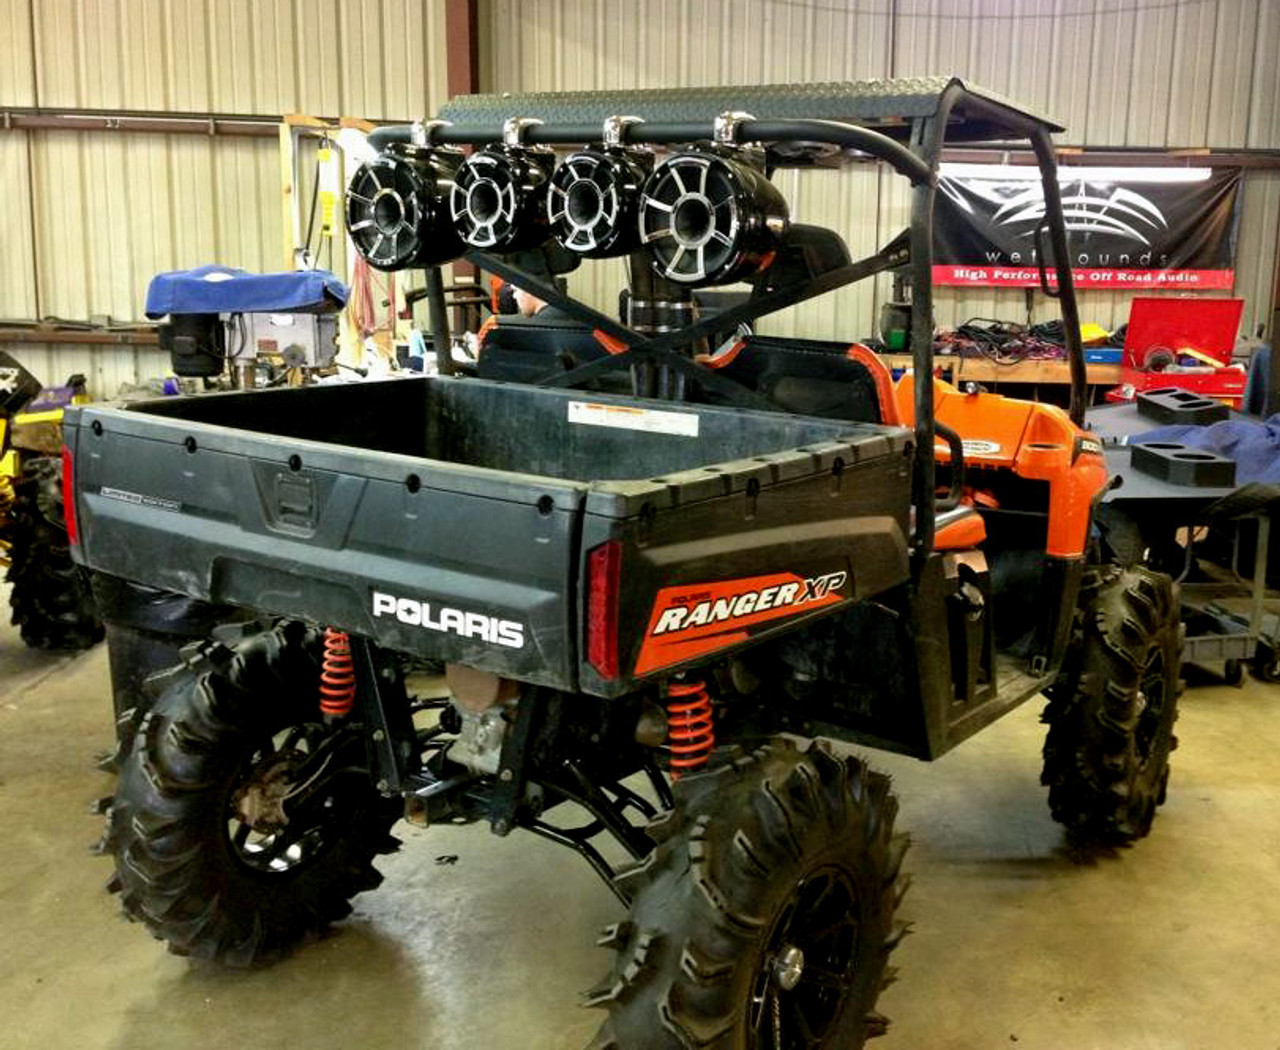 polaris ranger 800 side mount waketower bar offroad. Black Bedroom Furniture Sets. Home Design Ideas